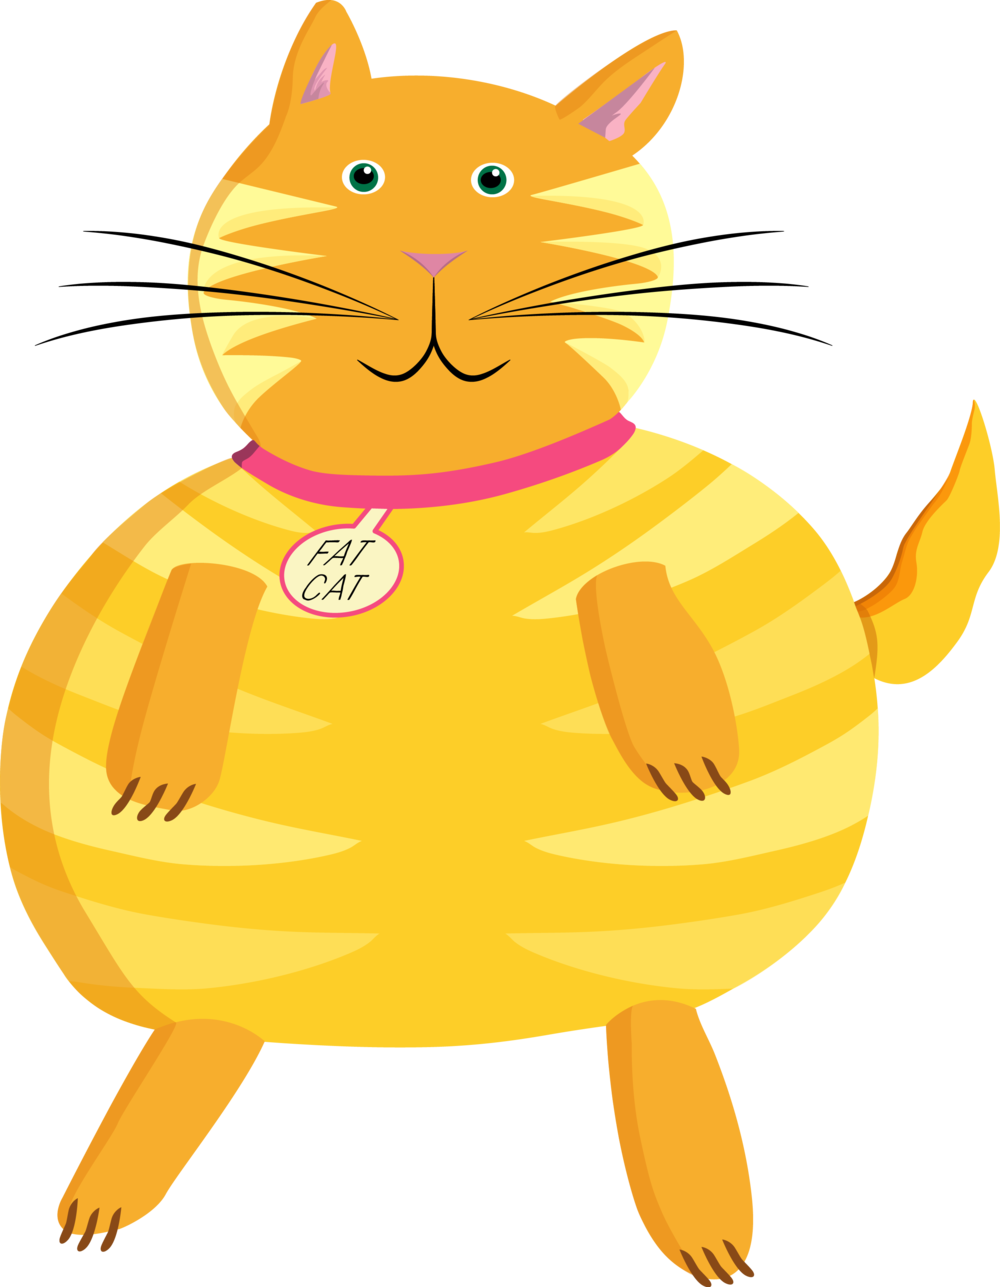 Orange and yellow cat clipart image transparent download Fat Cat Productions image transparent download